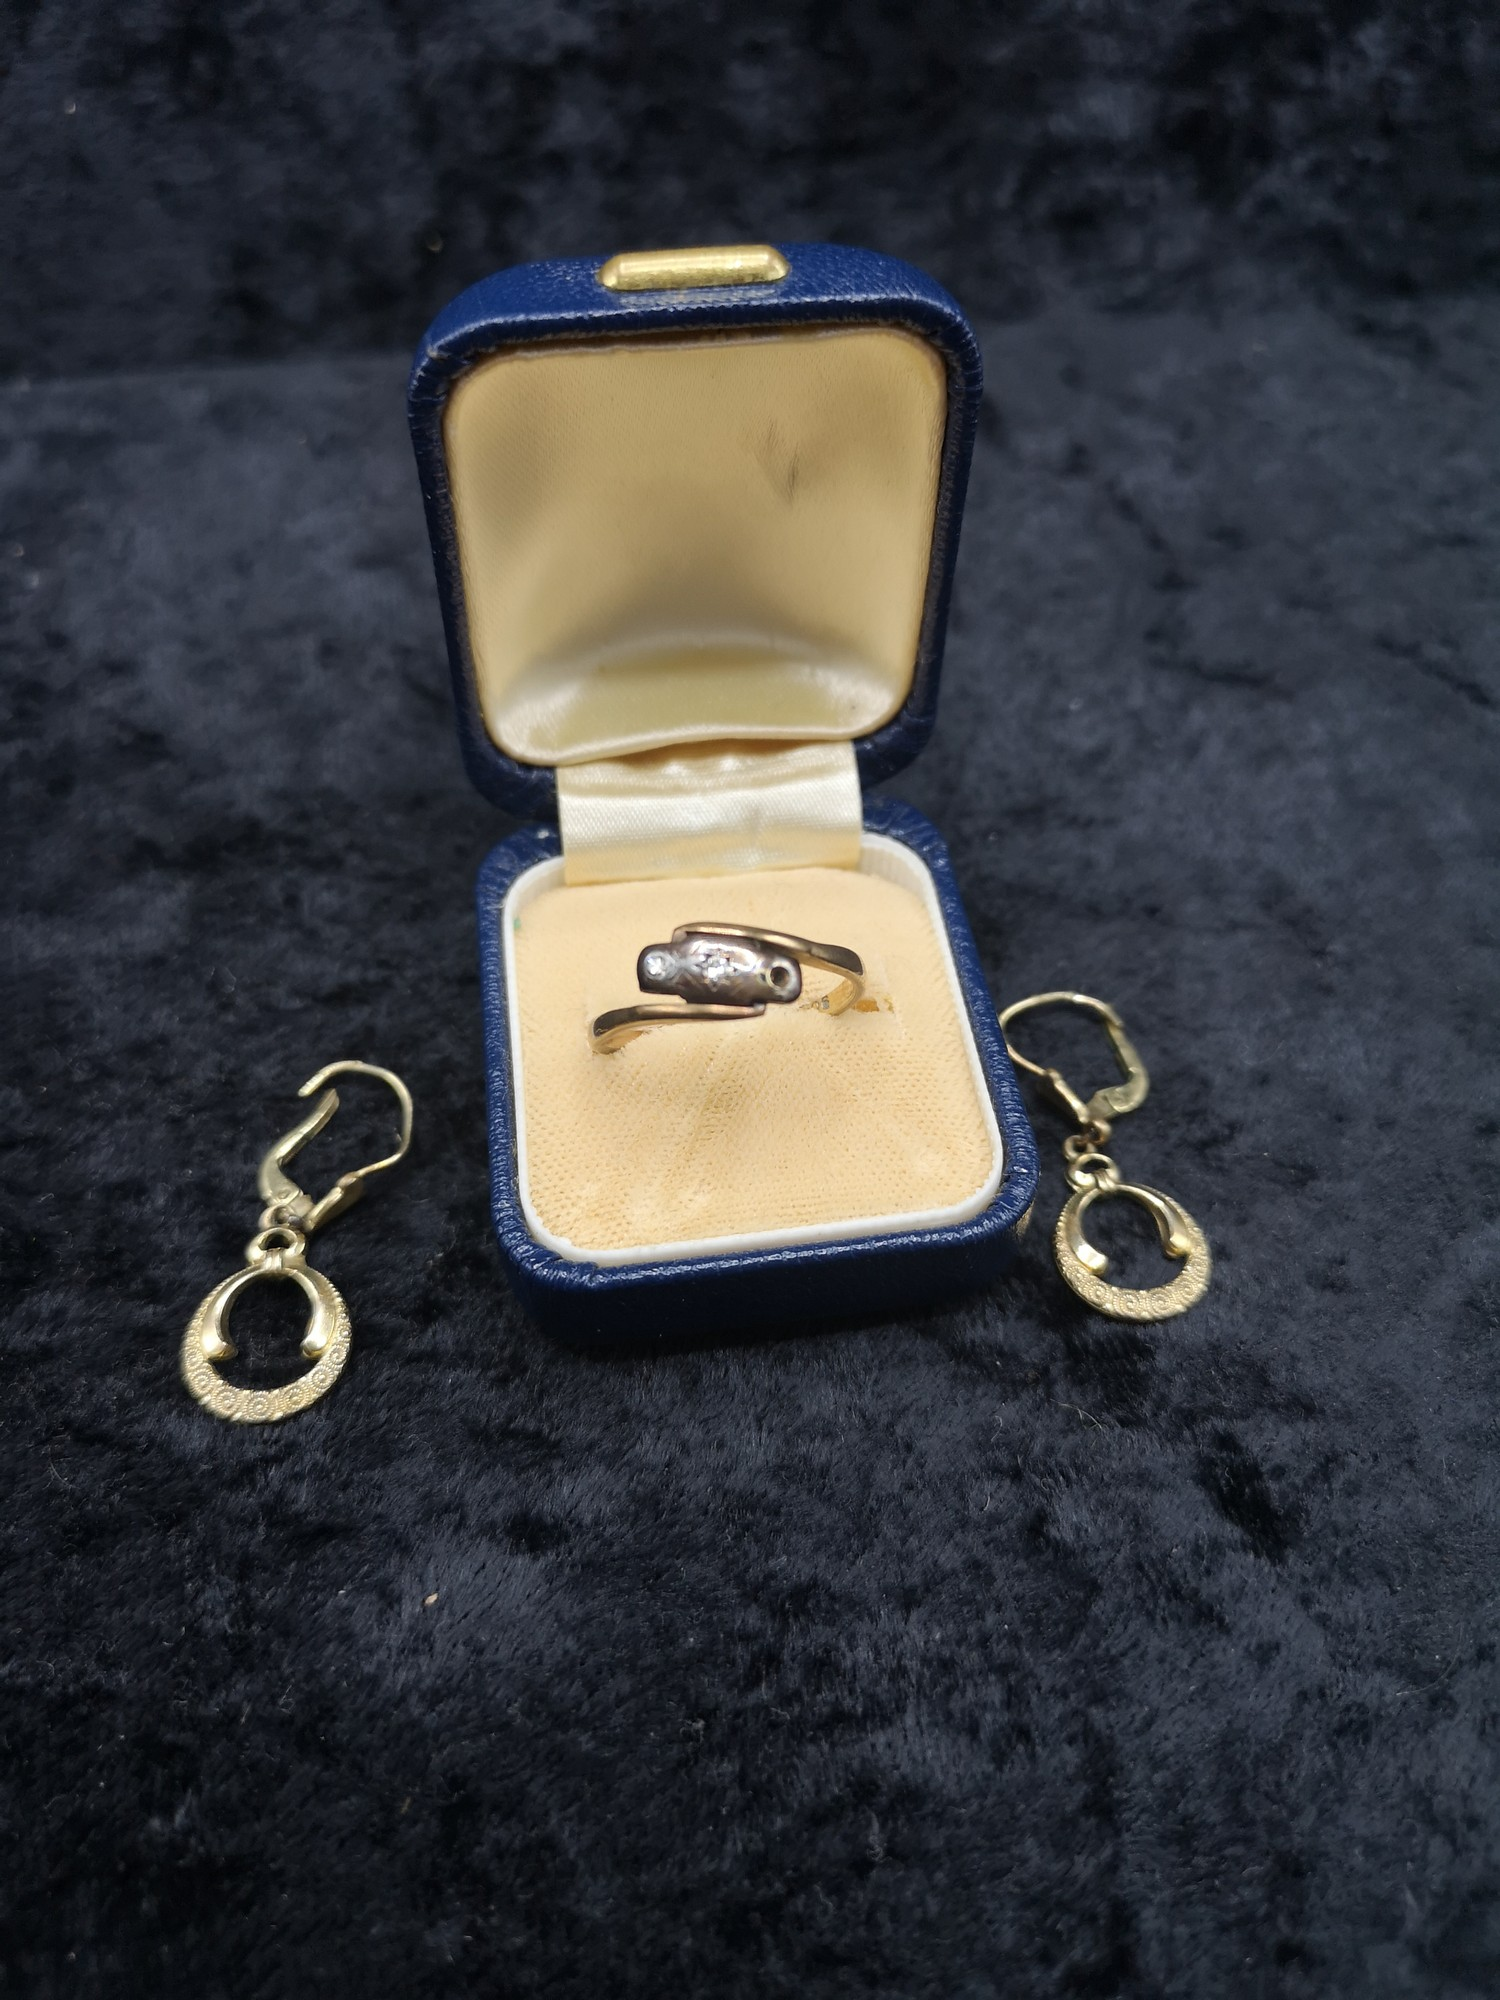 Pair of 9ct gold earrings together with 9ct gold gold hall marked ring with diamonds one stone